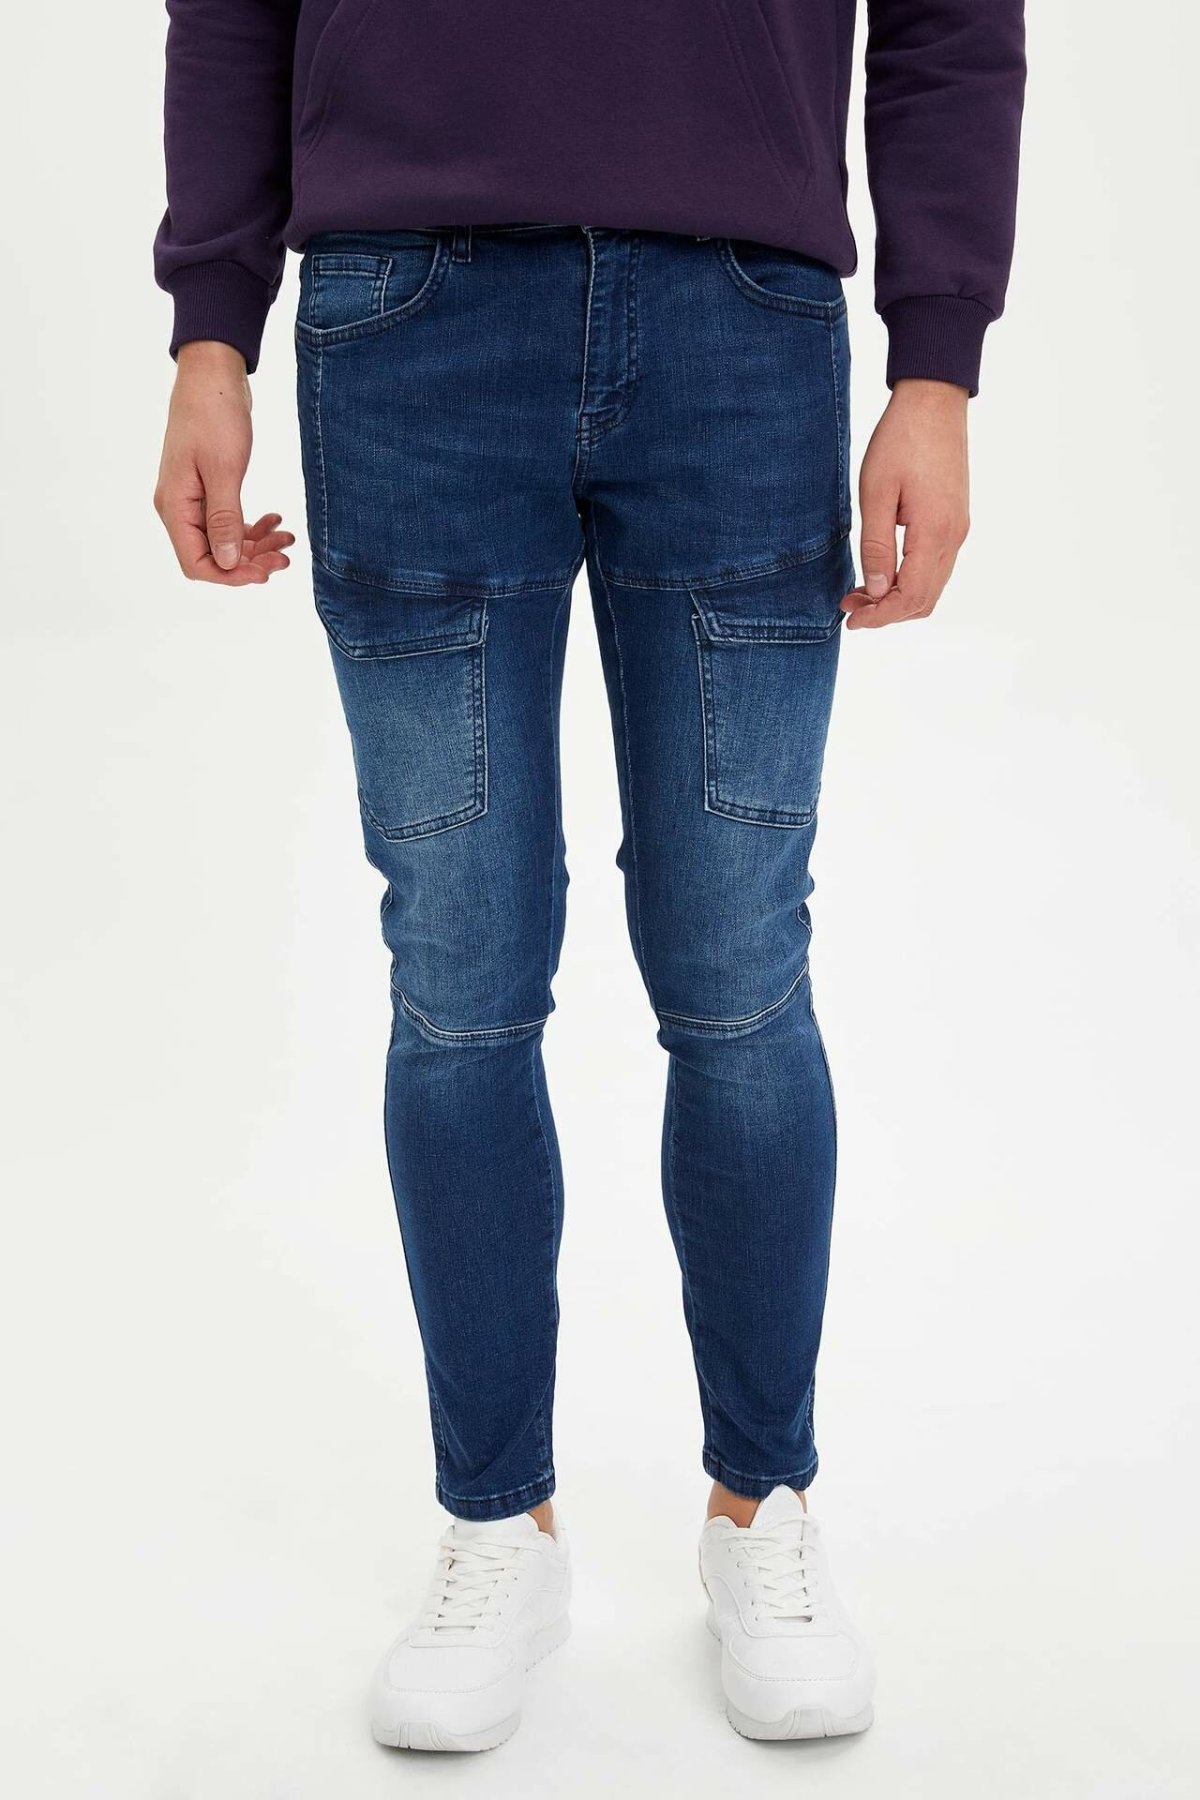 DeFacto Man Winter Blue Denim Jeans Men Pocket Decors Denim Long Pants Male Casual Slim Denim Trousers-M7115AZ19WN